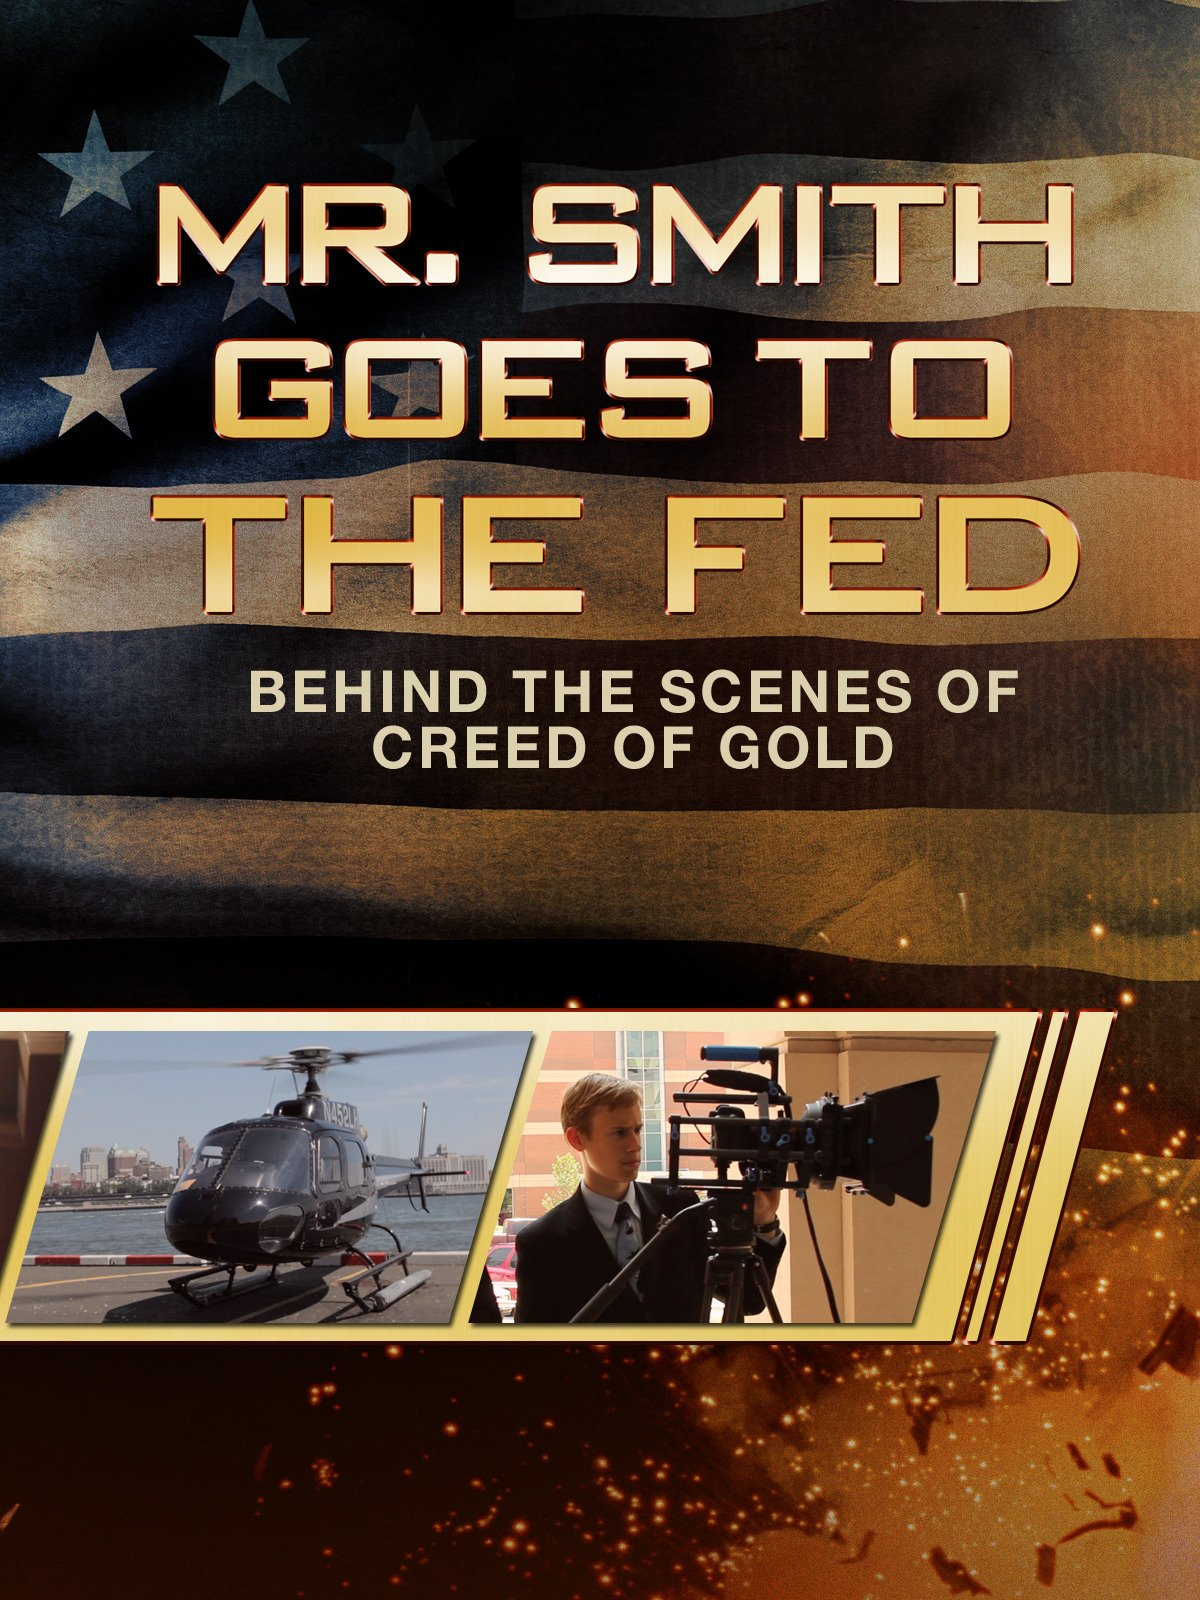 Mr. Smith Goes to the Fed: Behind the Scenes of Creed of Gold